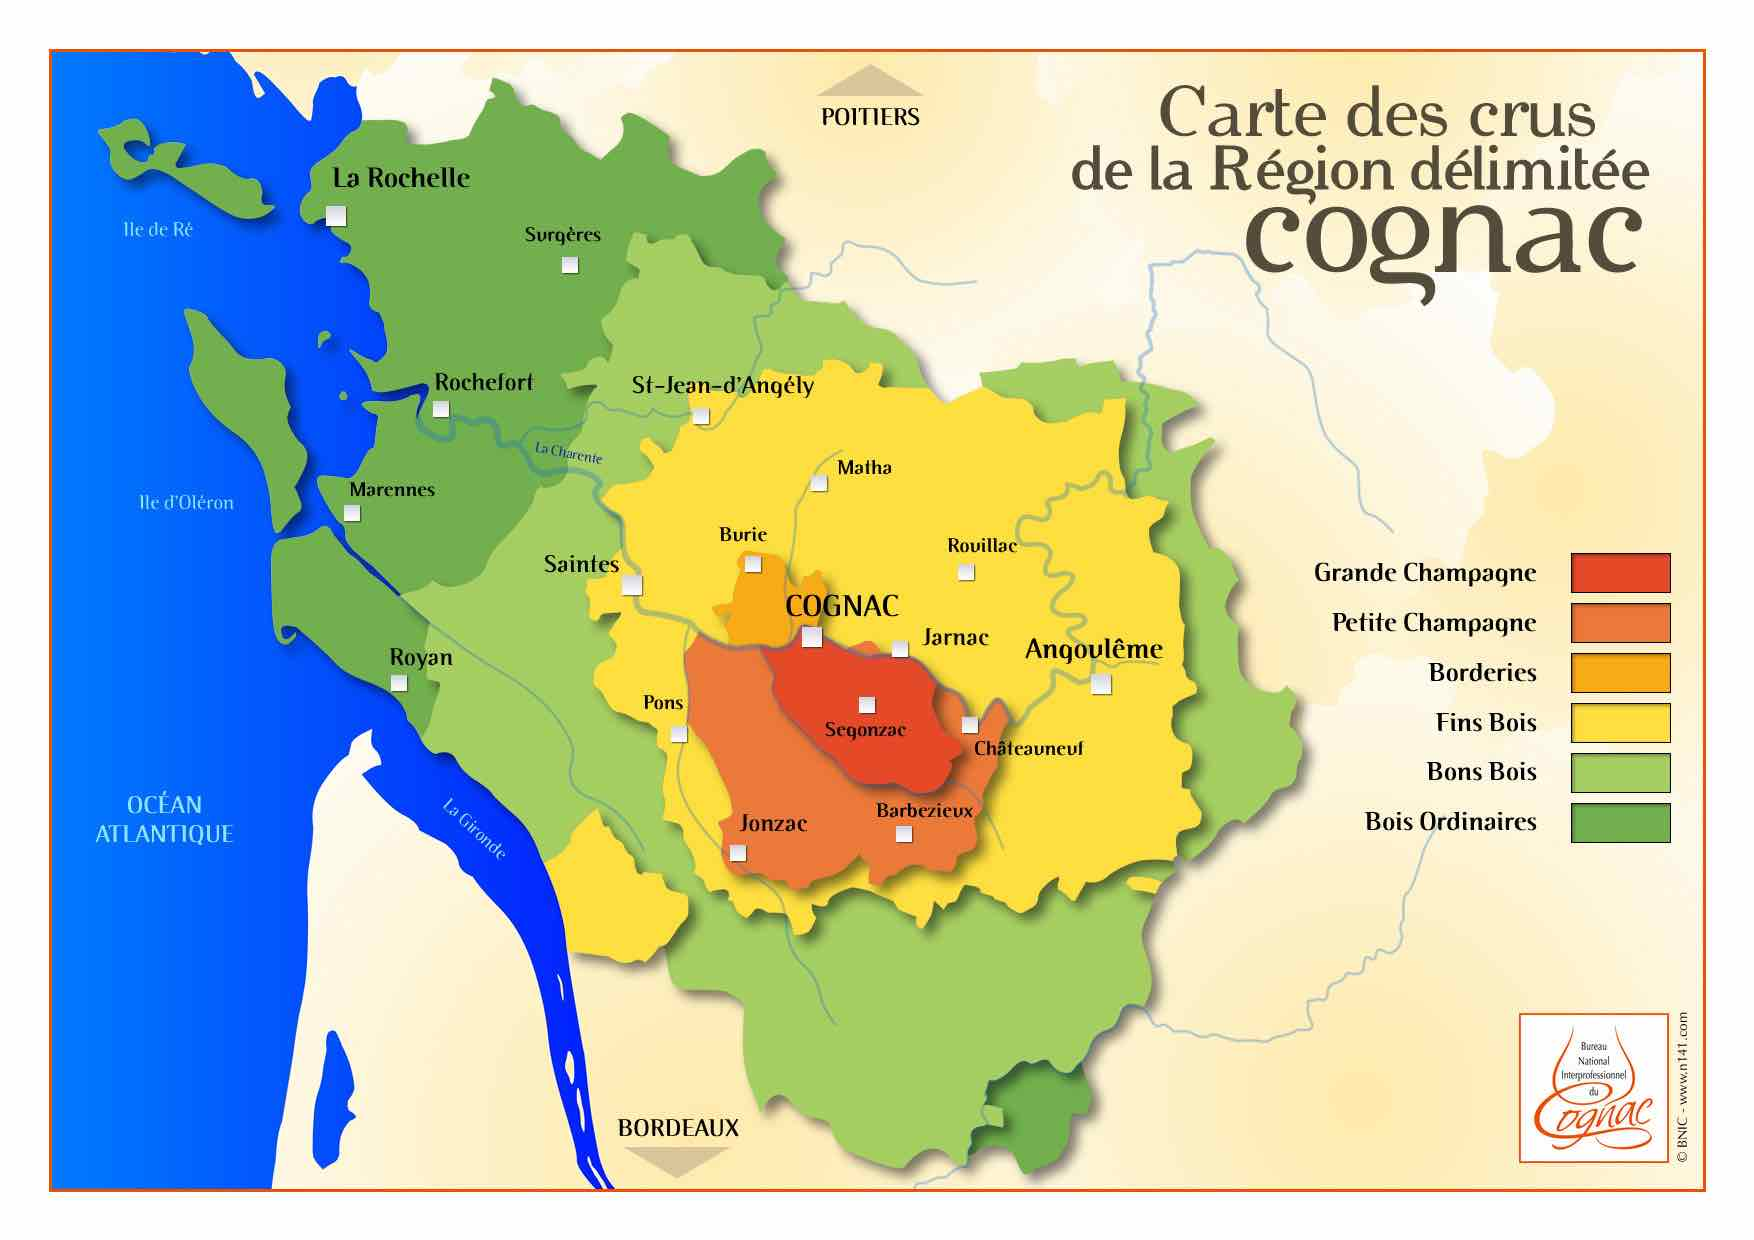 Six parts of the cognac region grande champagne to bois for Champagne region in france